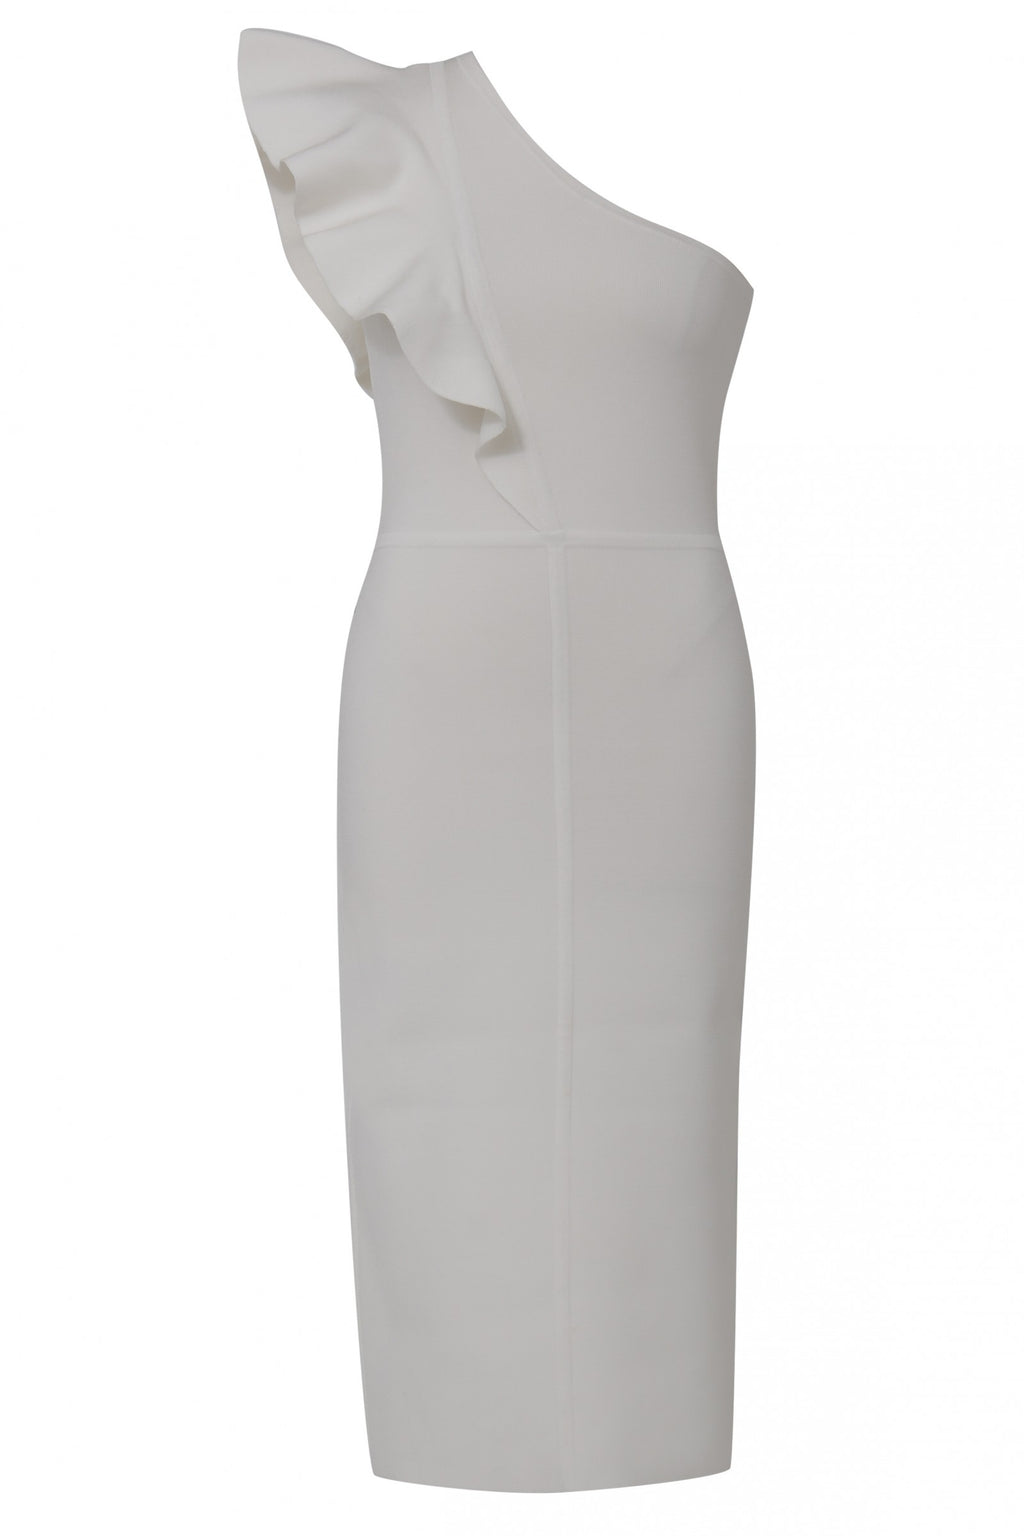 Anchor One Shoulder Dress in White